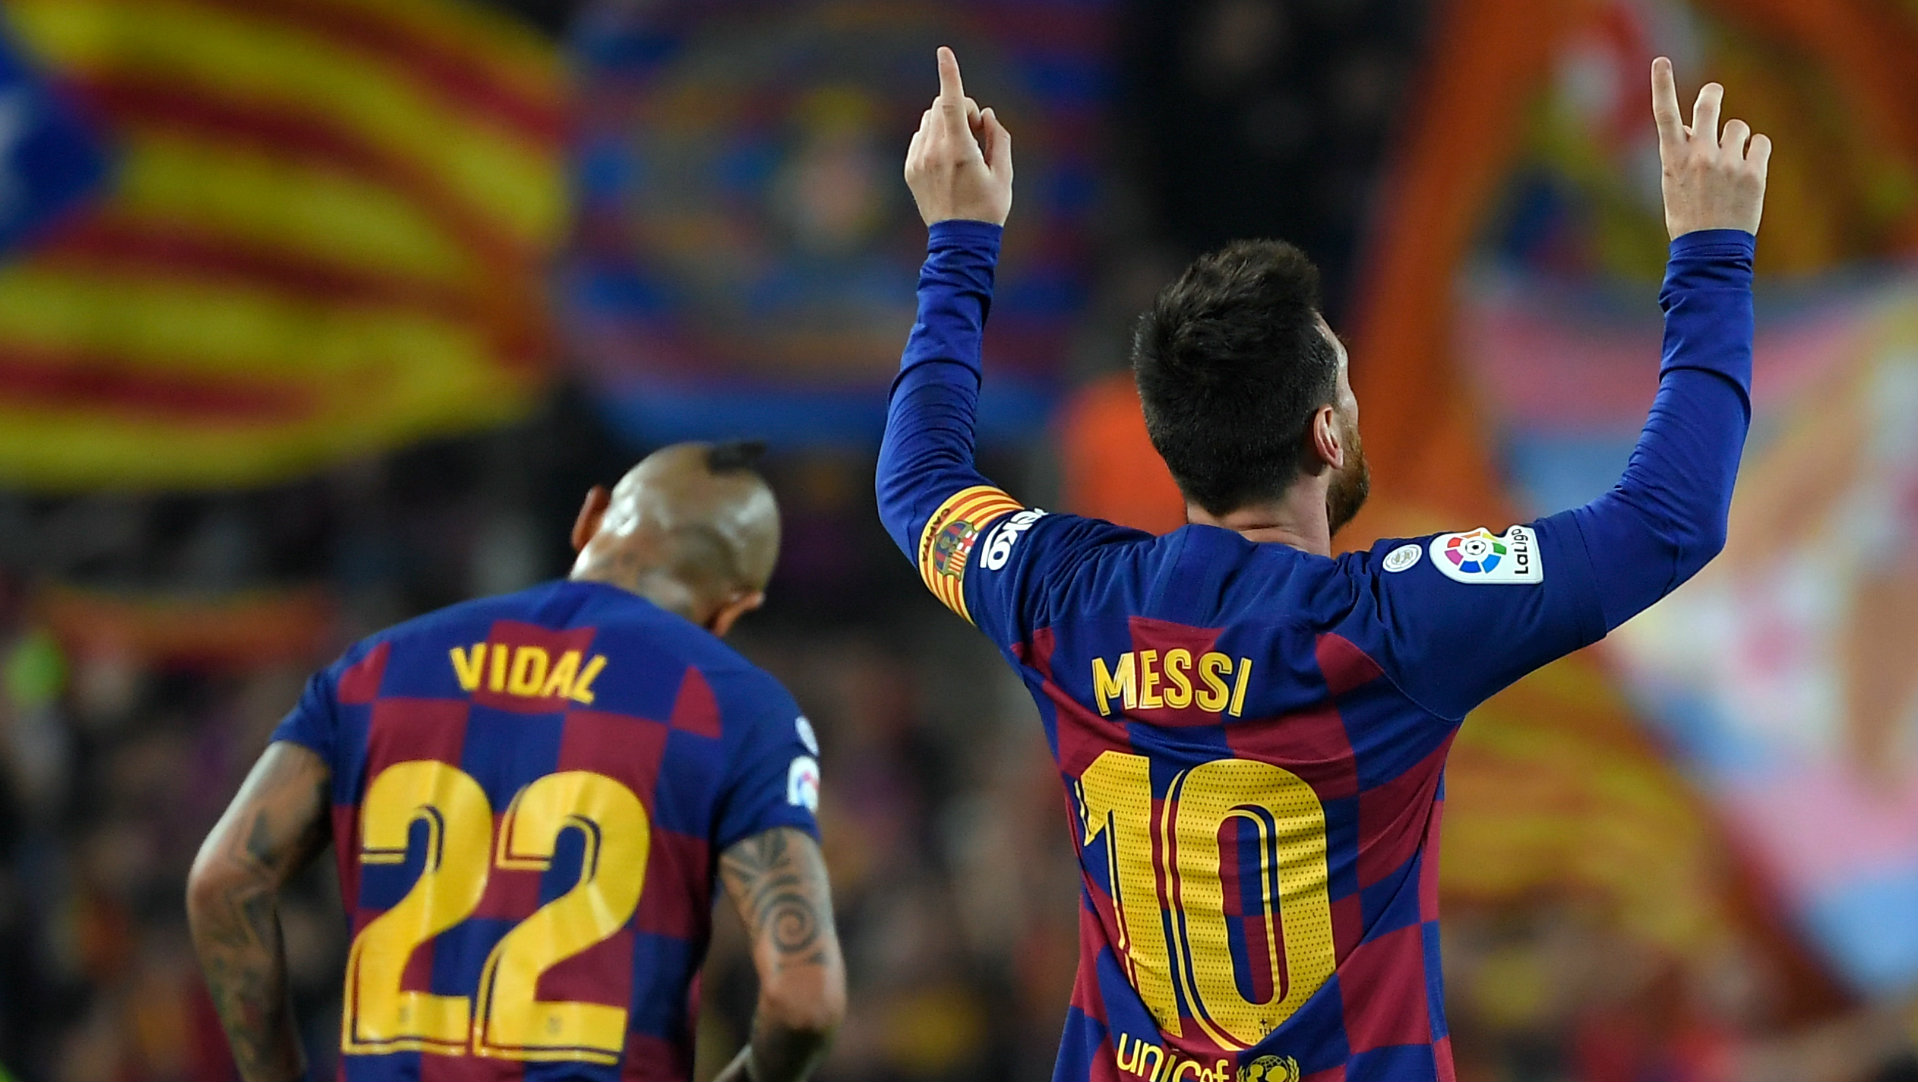 Messi is from another planet' - Vidal praises Barcelona star's dominance    Goal.com